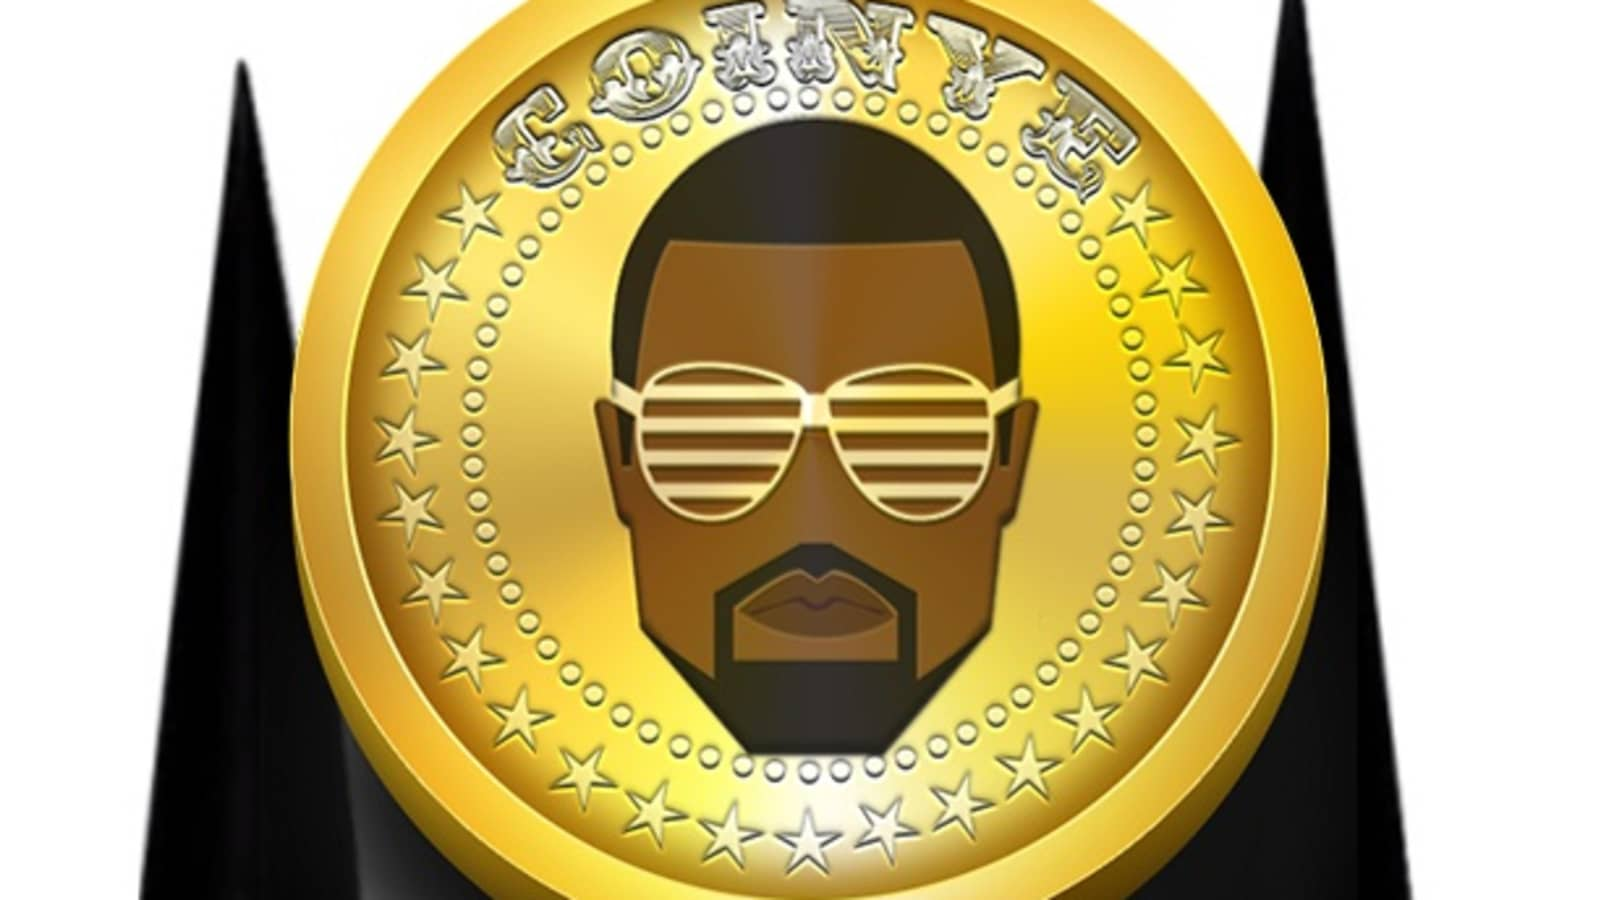 Coinye west crypto currency price betting odds converter table